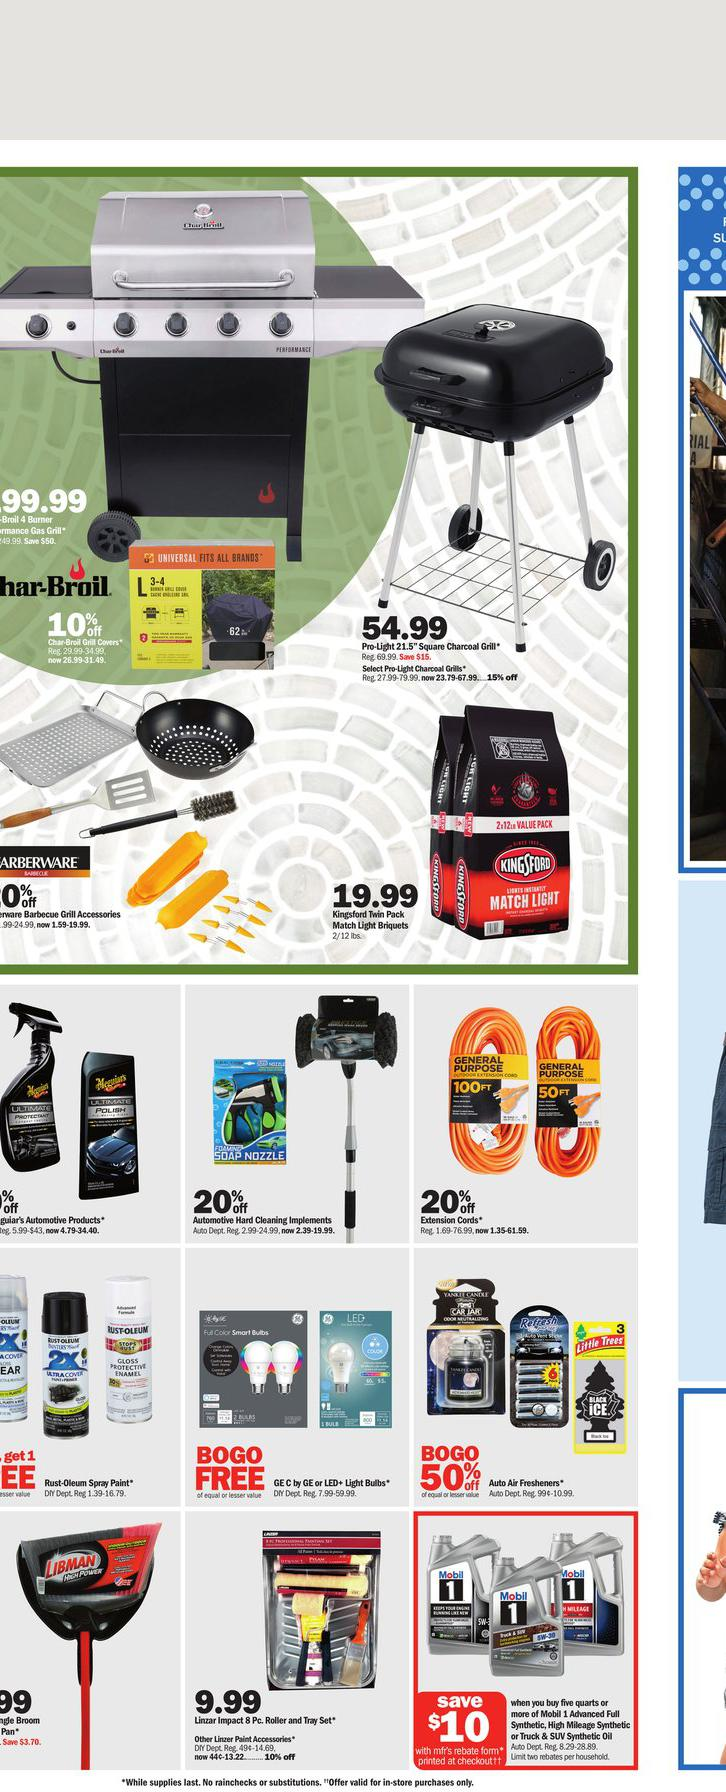 06.06.2021 Meijer ad 20. page